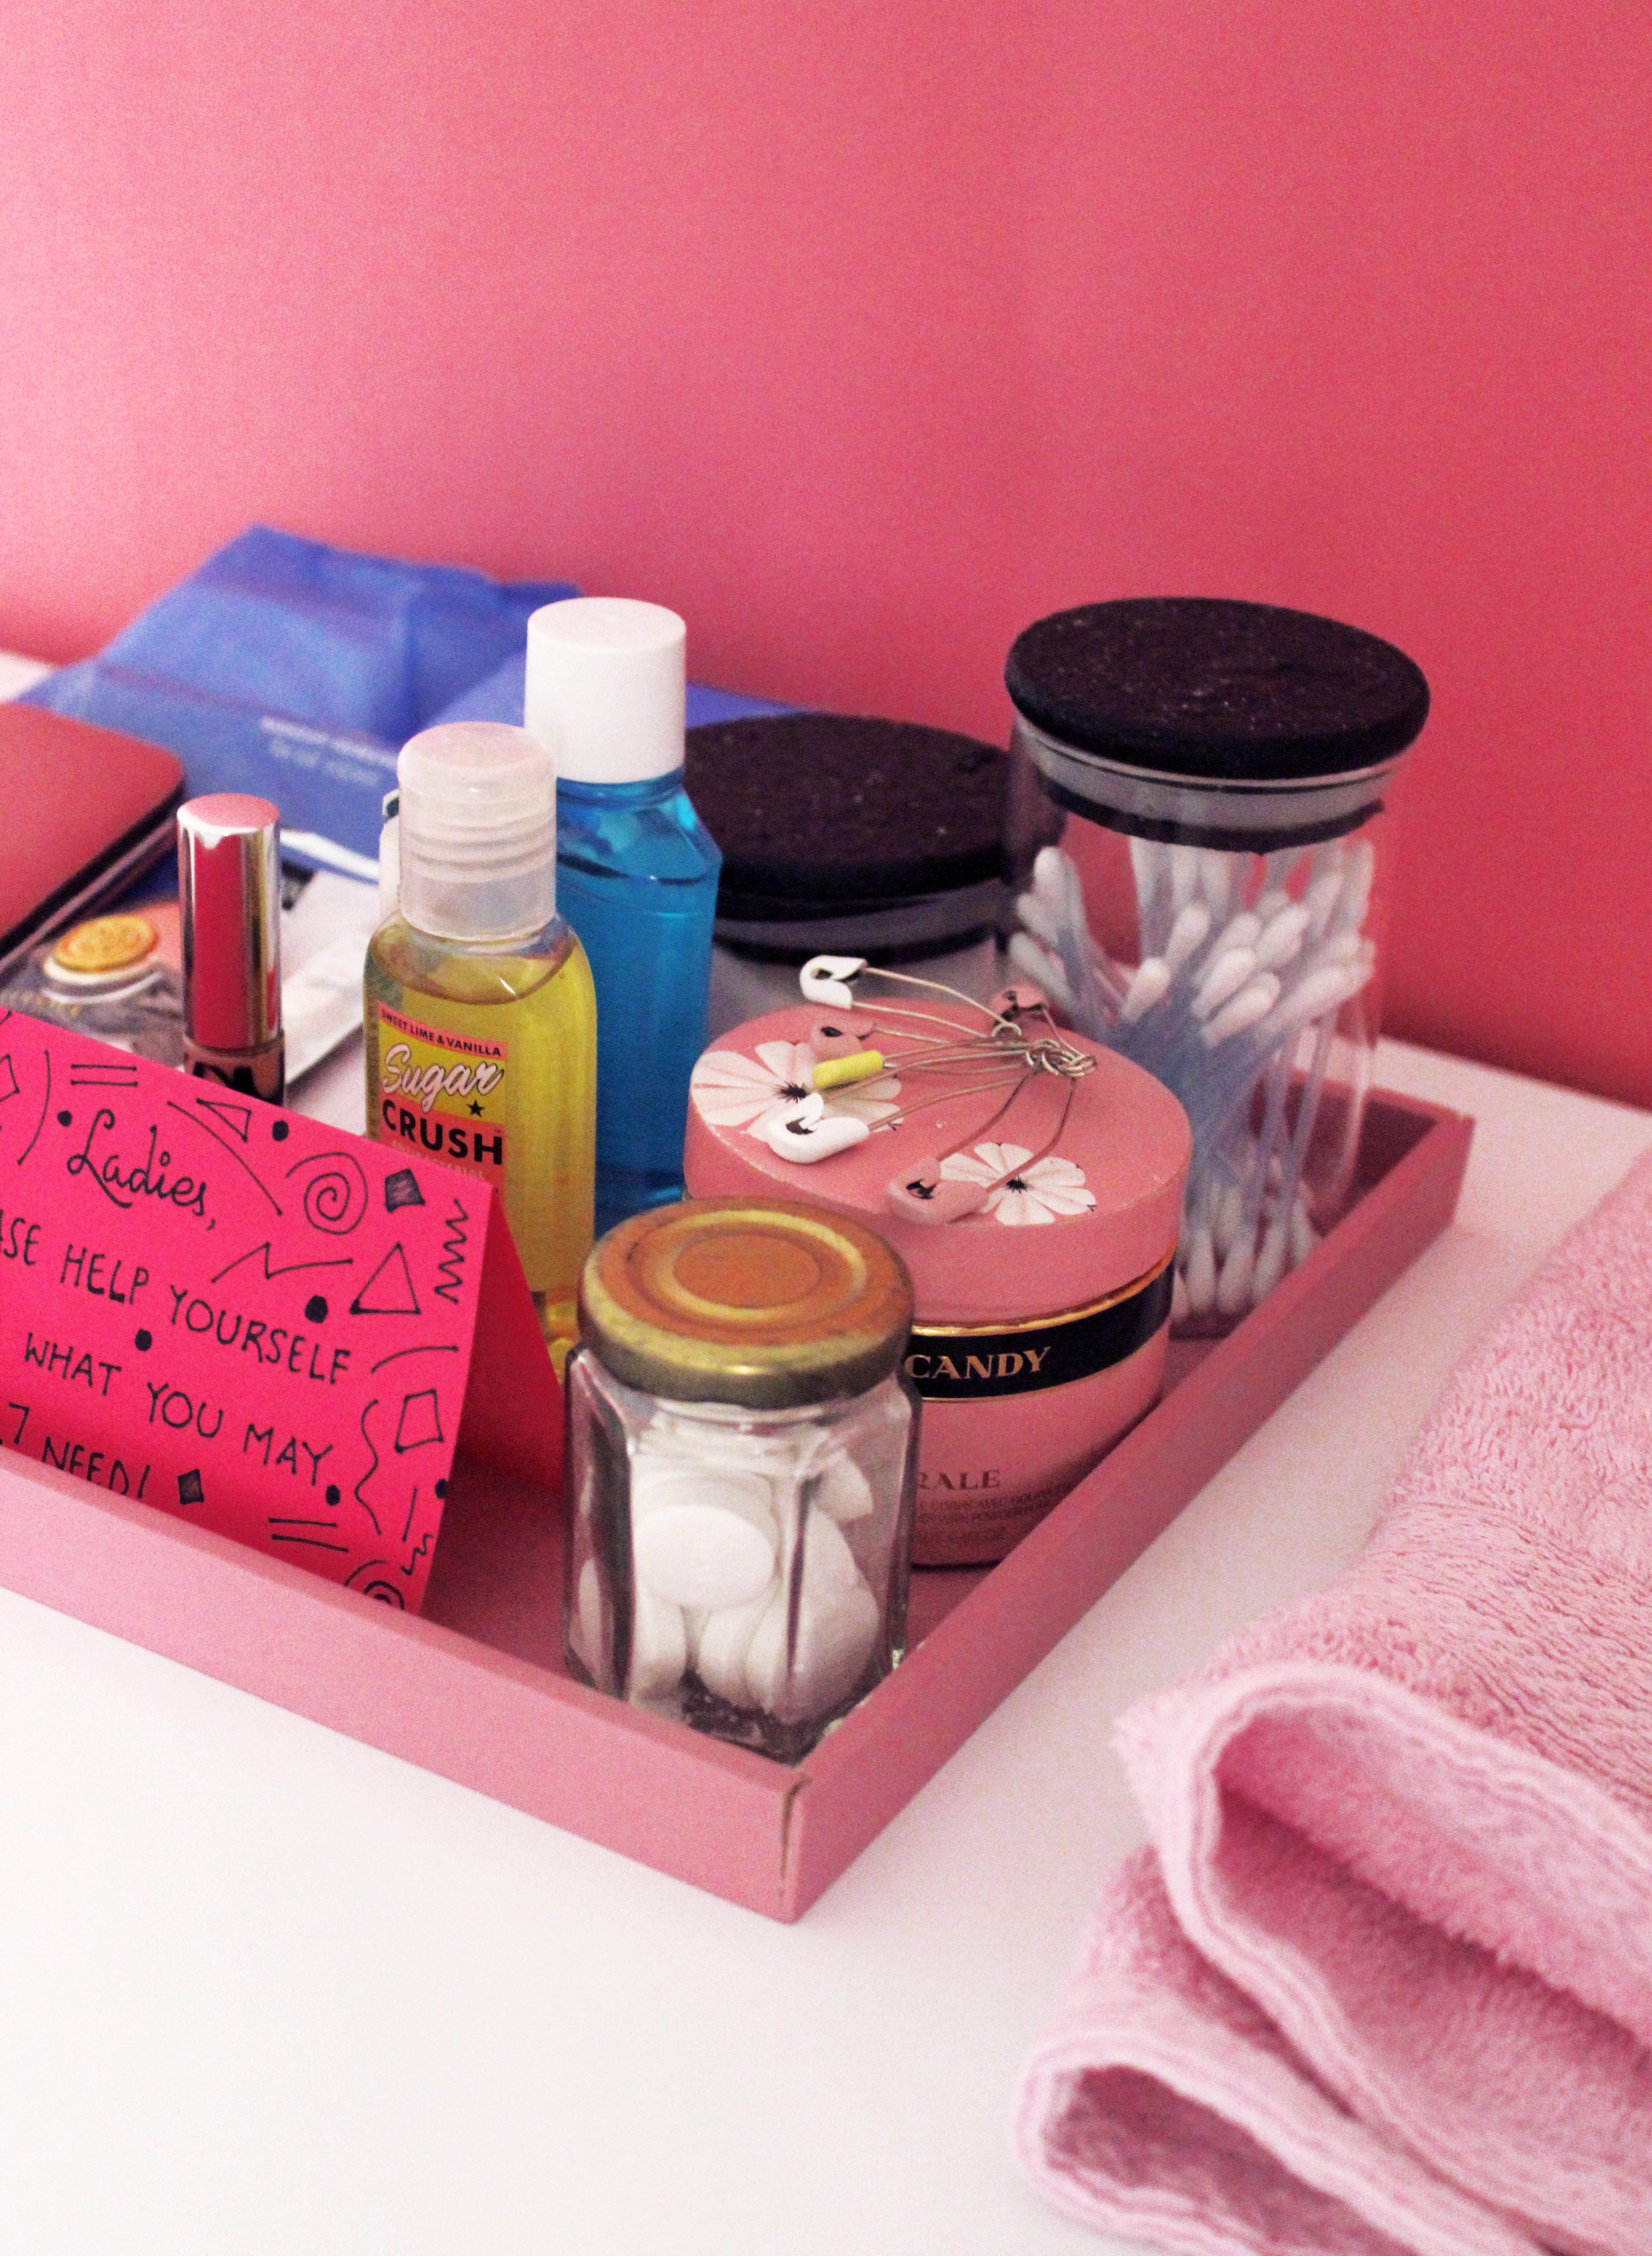 Emergency Bathroom Kits for Parties for women by The Craftables